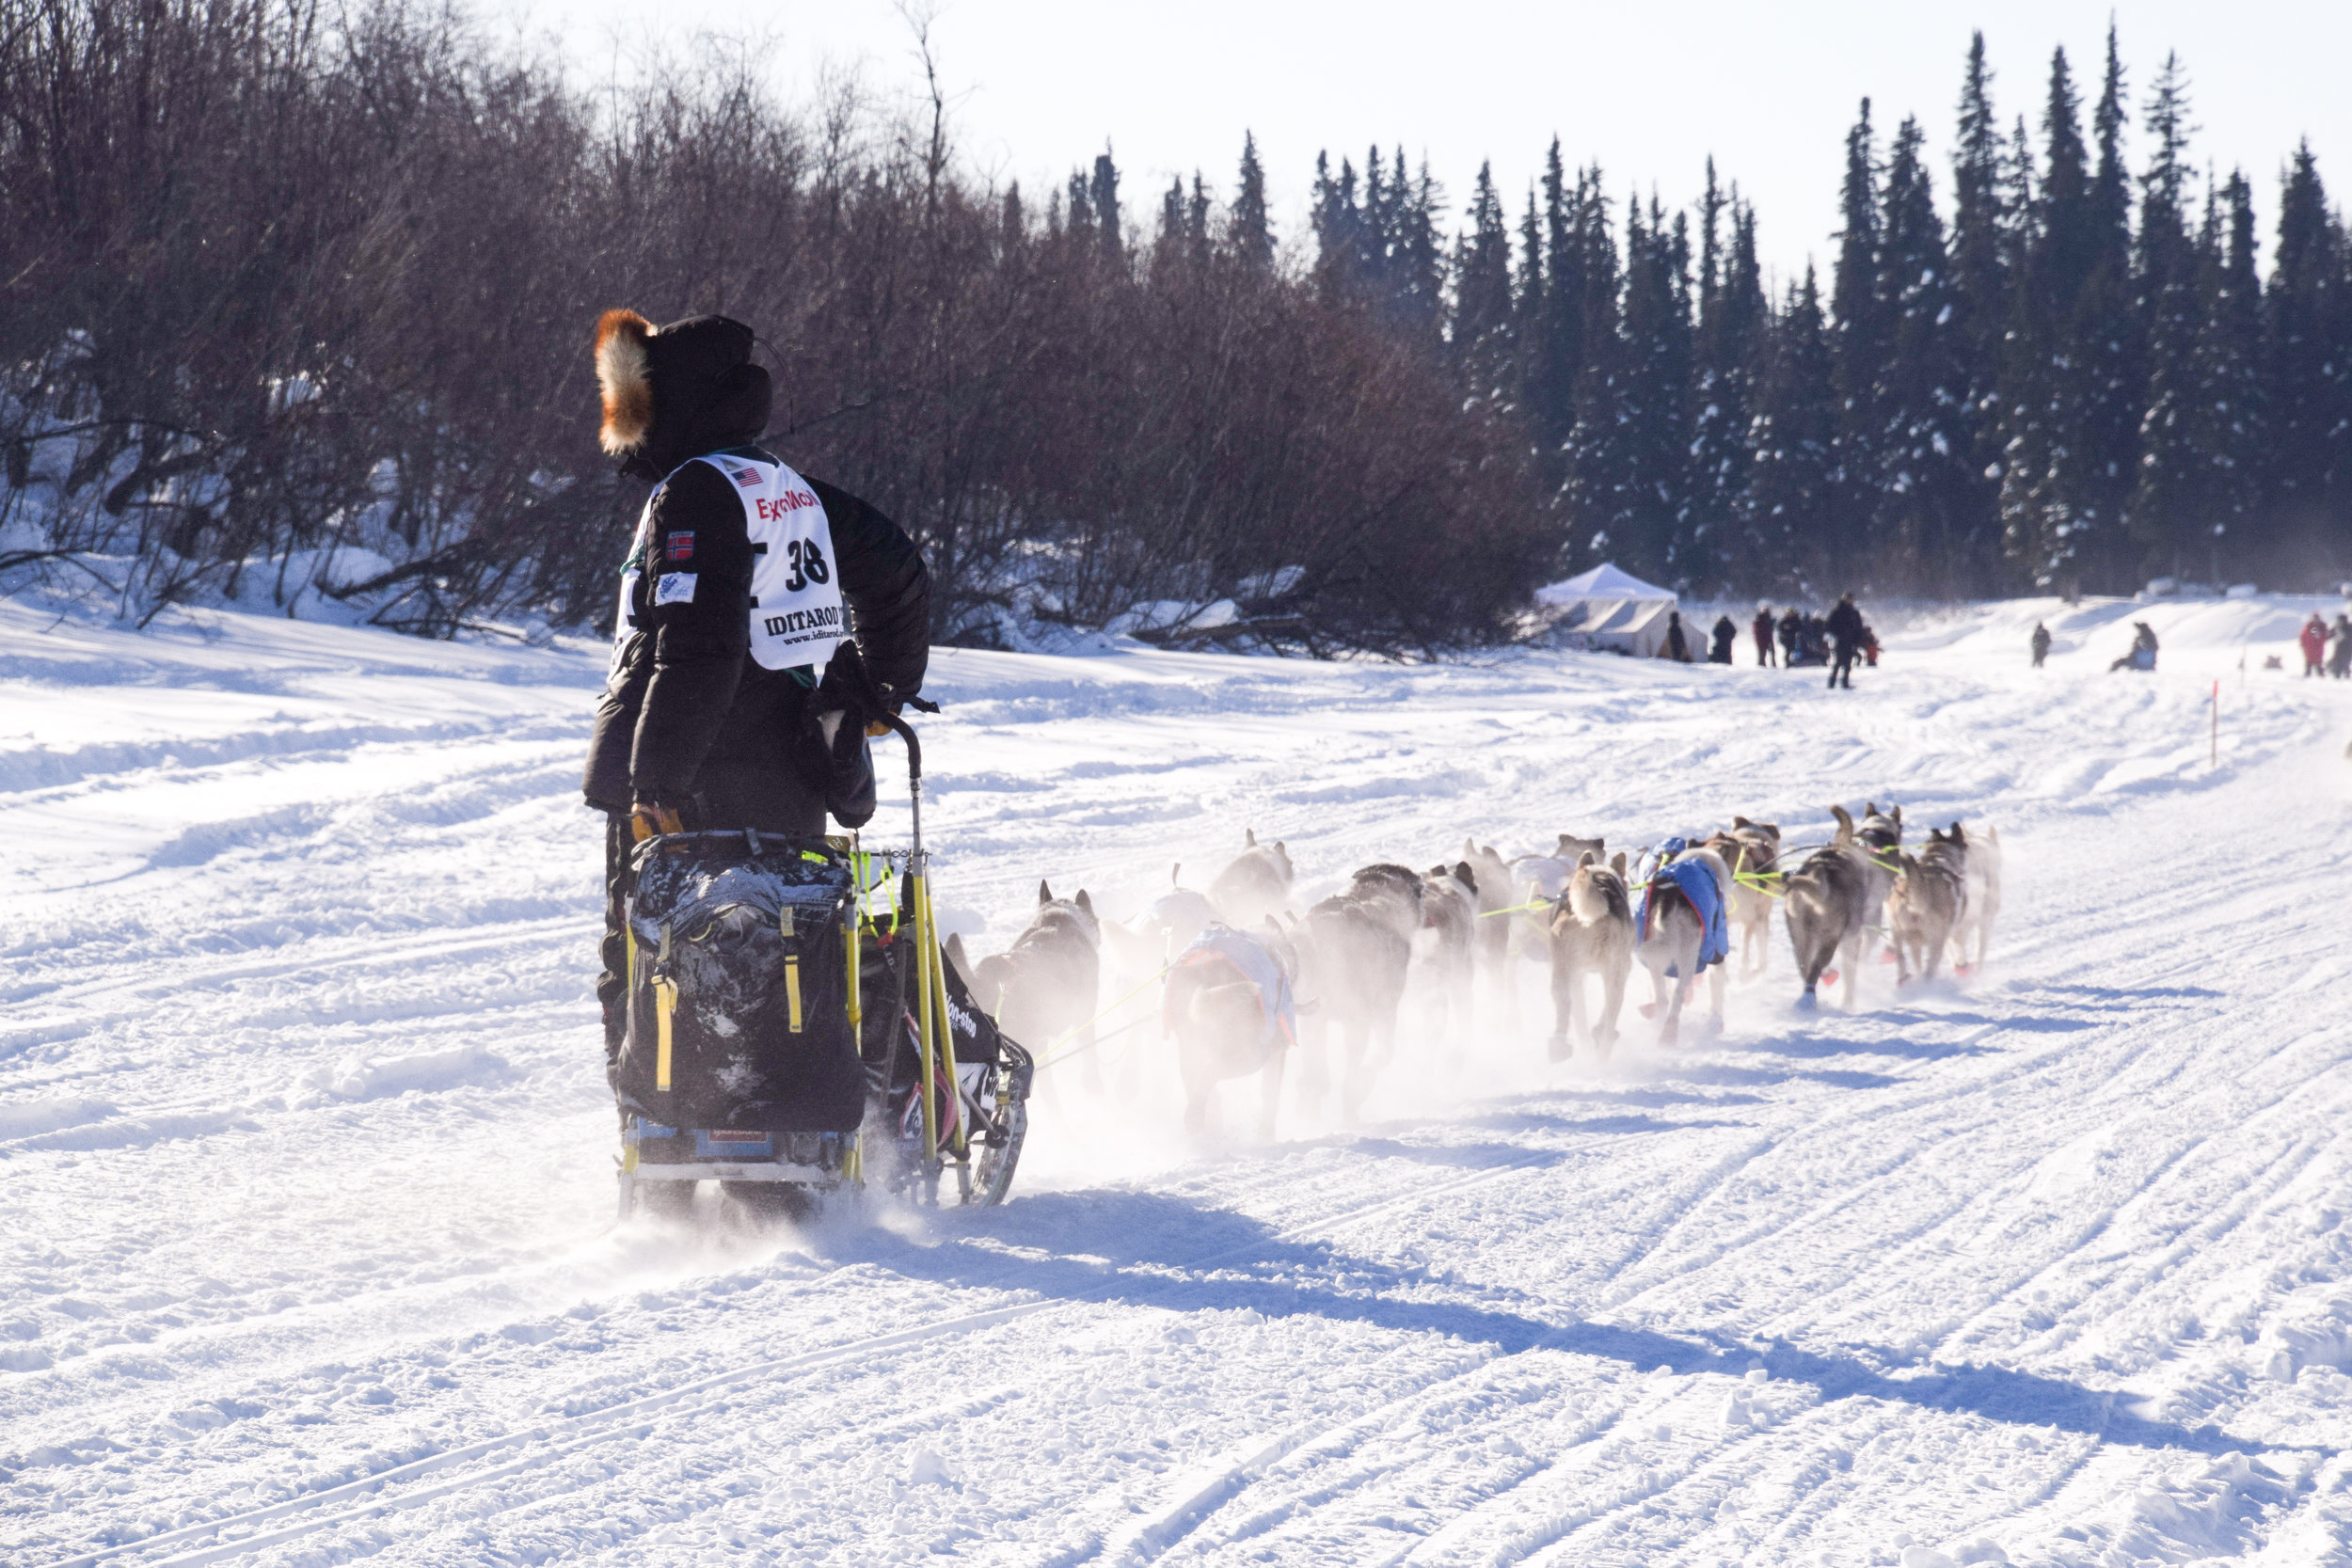 Joar Leifseth Ulson, a musher from Norway, with his team. Currently in 2nd place, but has yet to take any of the mandatory breaks.